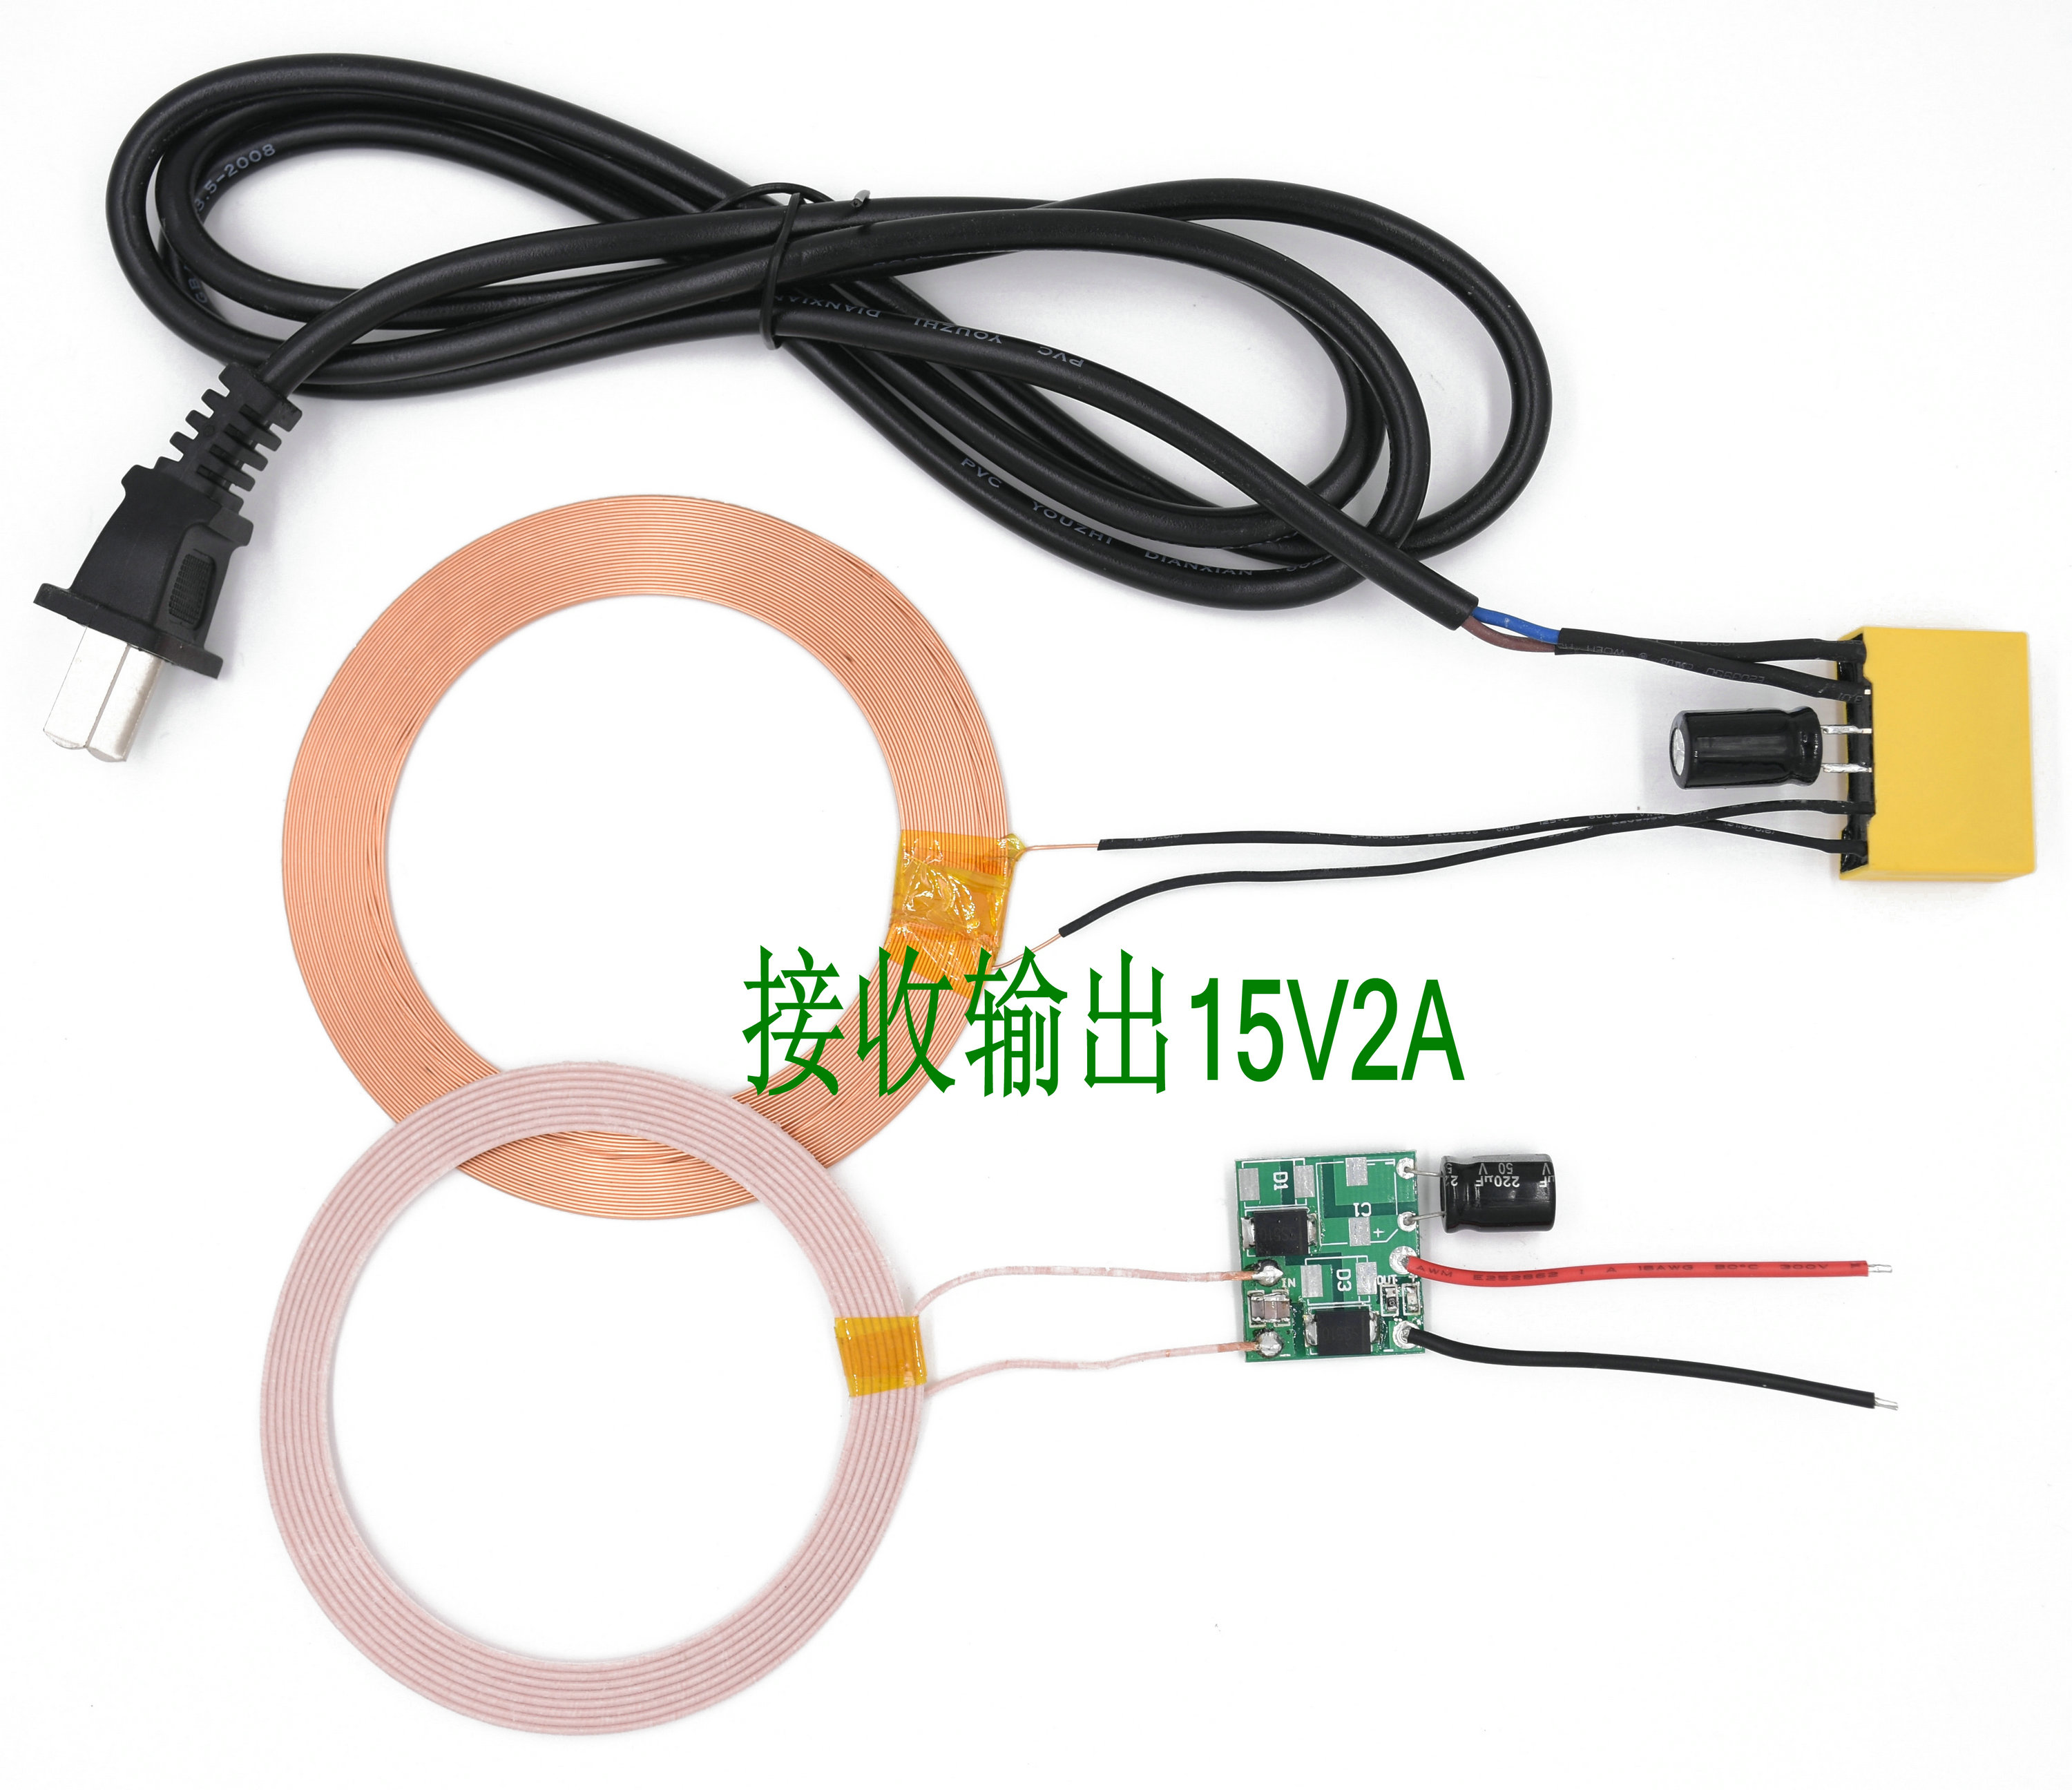 15V2A high power wireless power supply module wireless charging module wireless transmission module xkt 412 wireless charging module wireless power supply module high current wireless transmission module